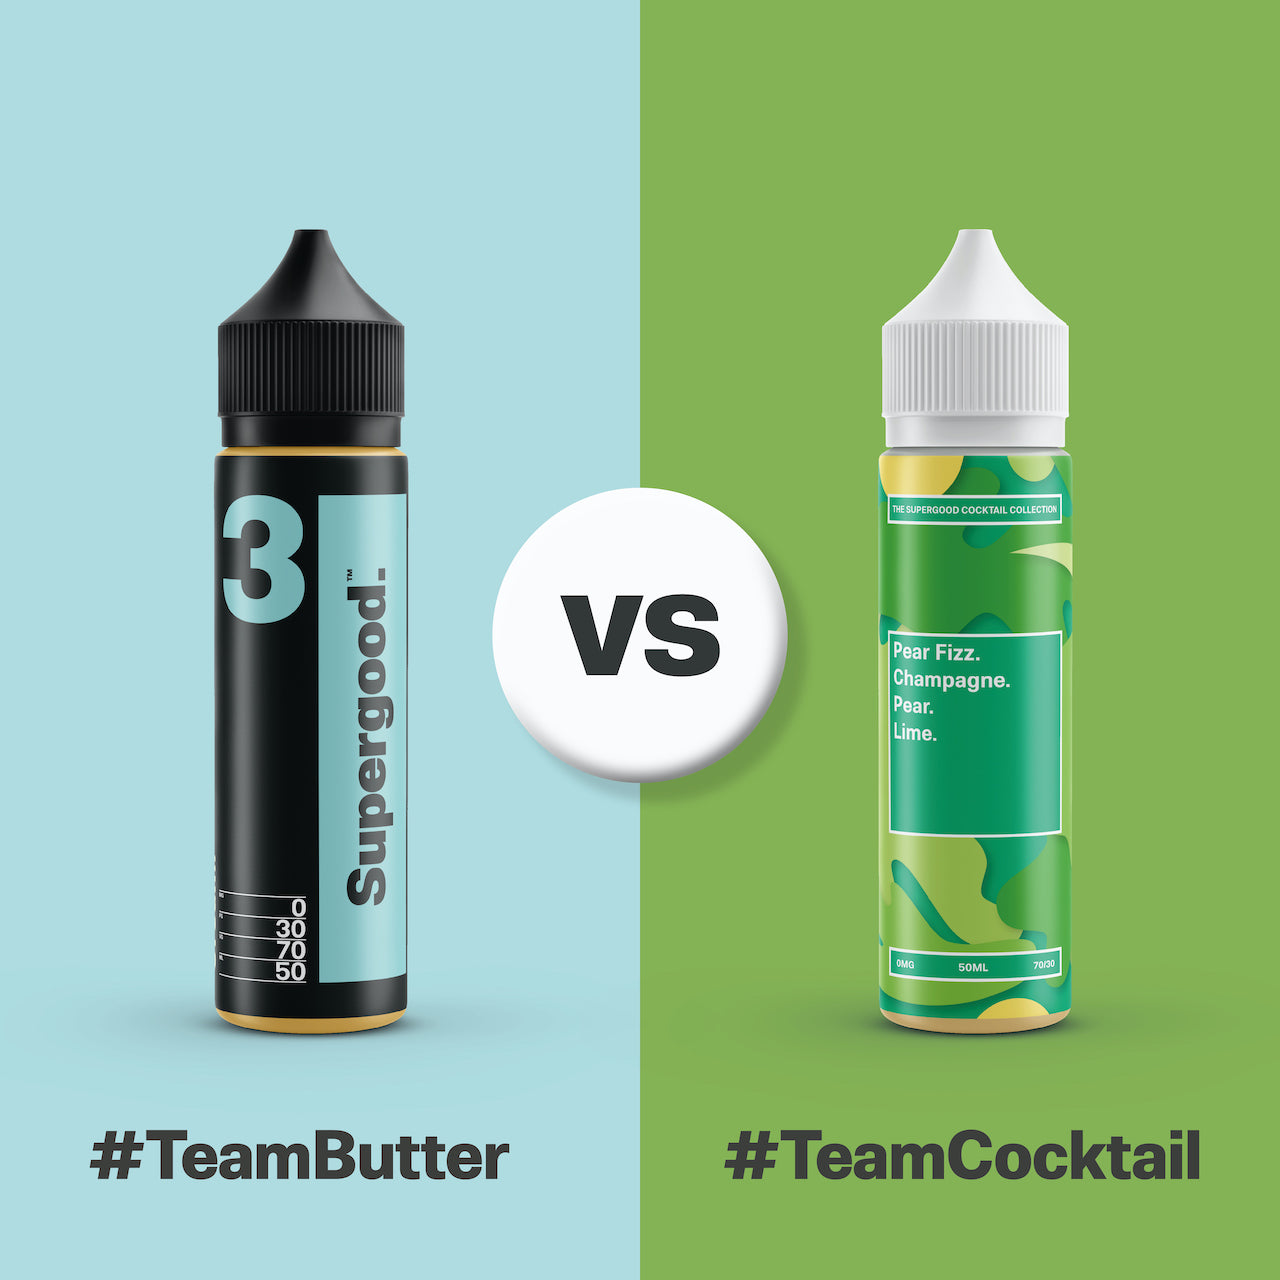 #TeamButter Or #TeamCocktail?